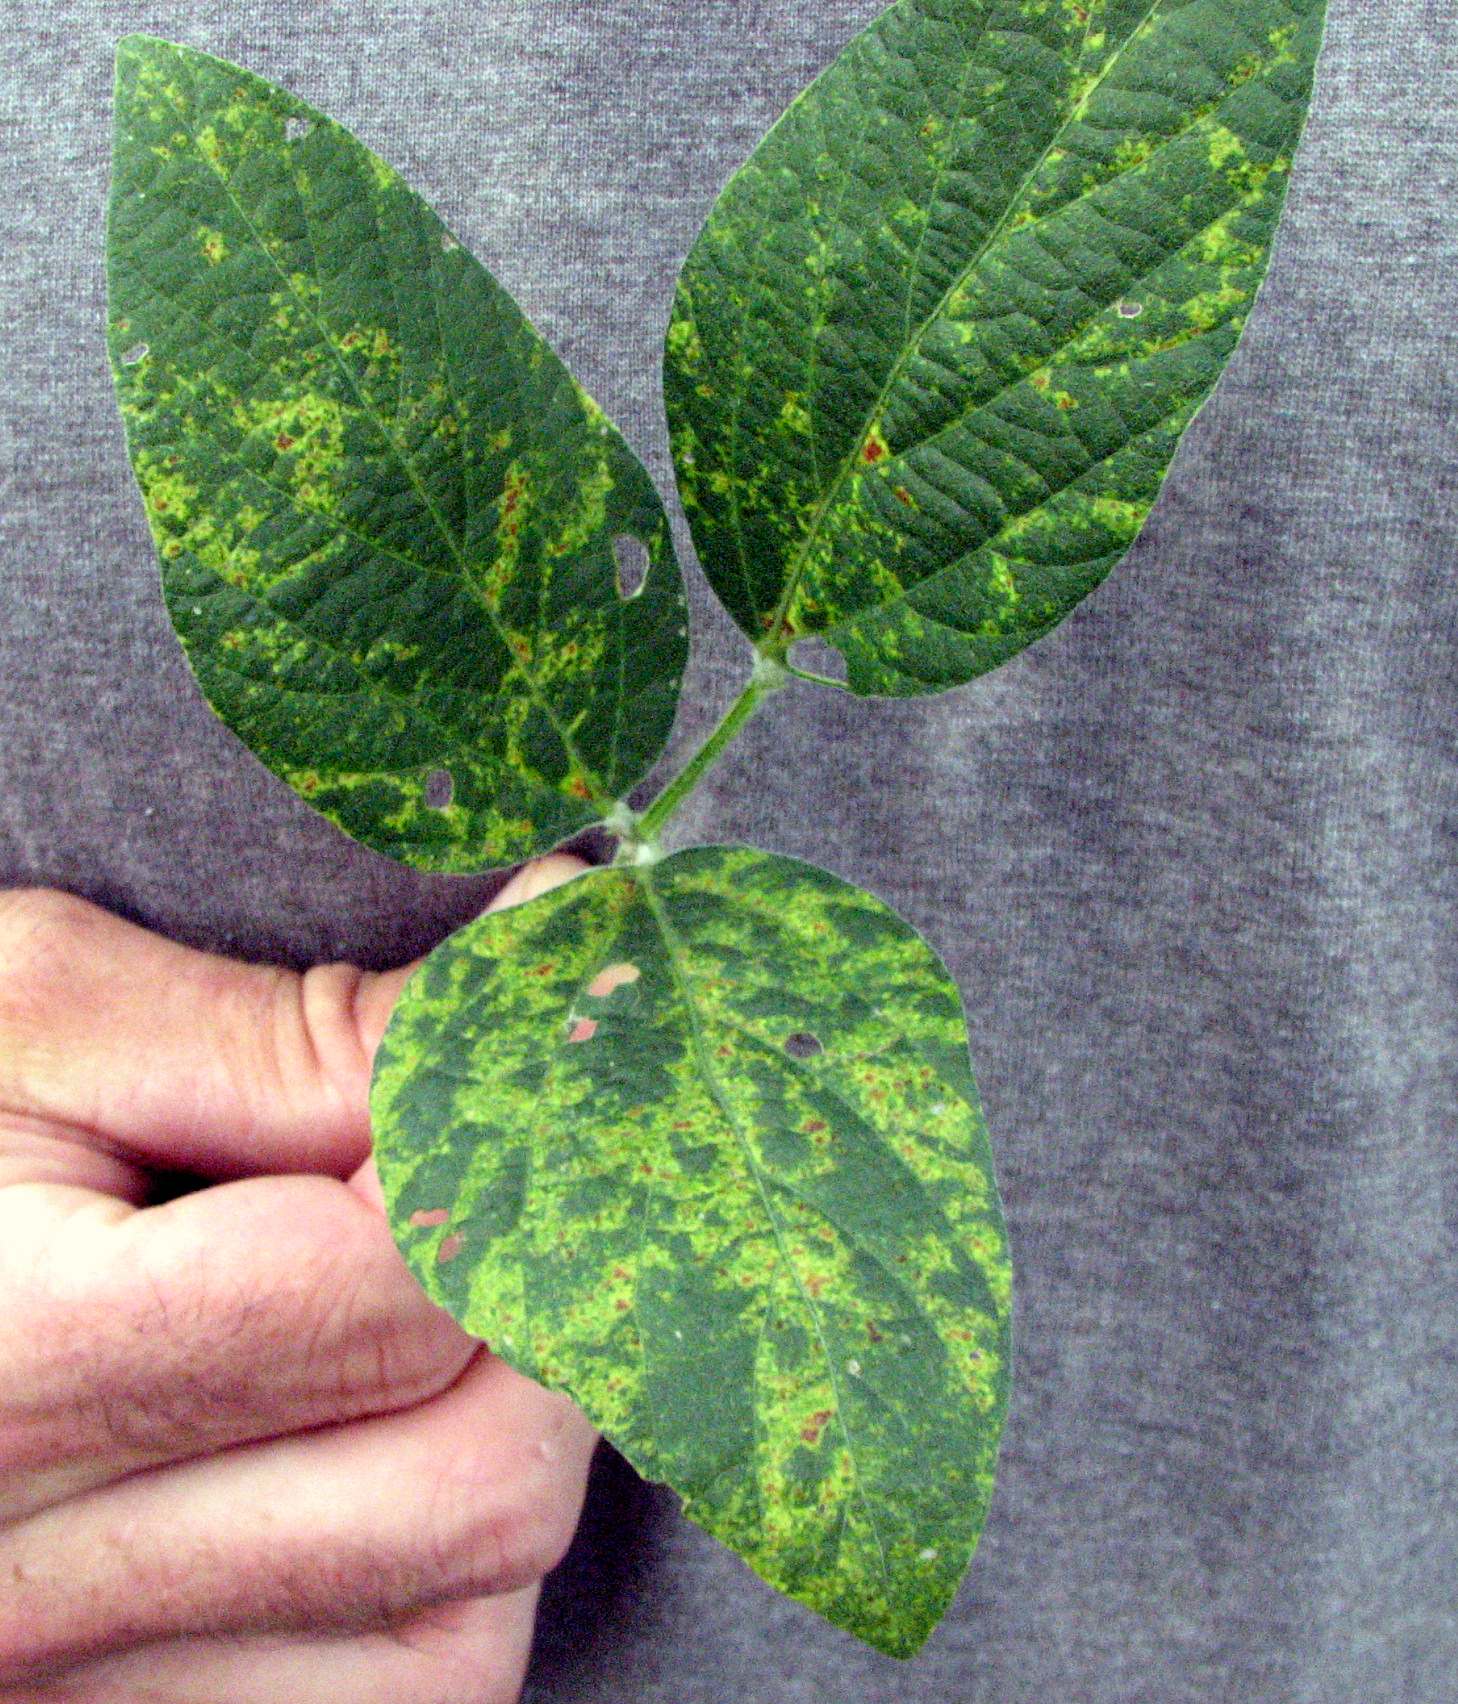 Patterns of bright yellow and dark green leaf tissue symptomatic of alfalfa mosaic.